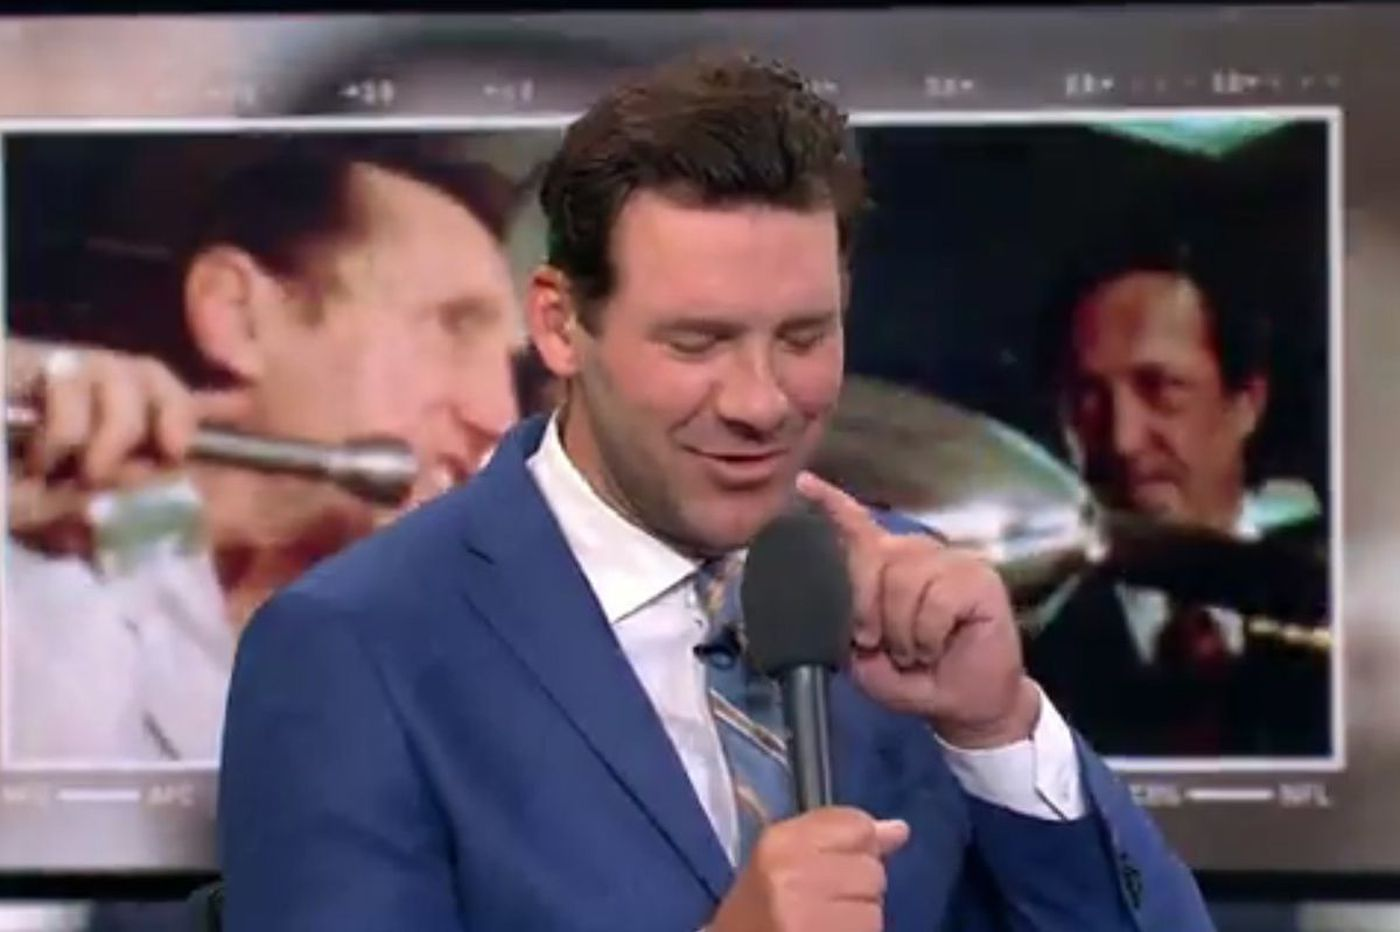 Both DirecTV and Tony Romo suffered through tech issues on Sunday